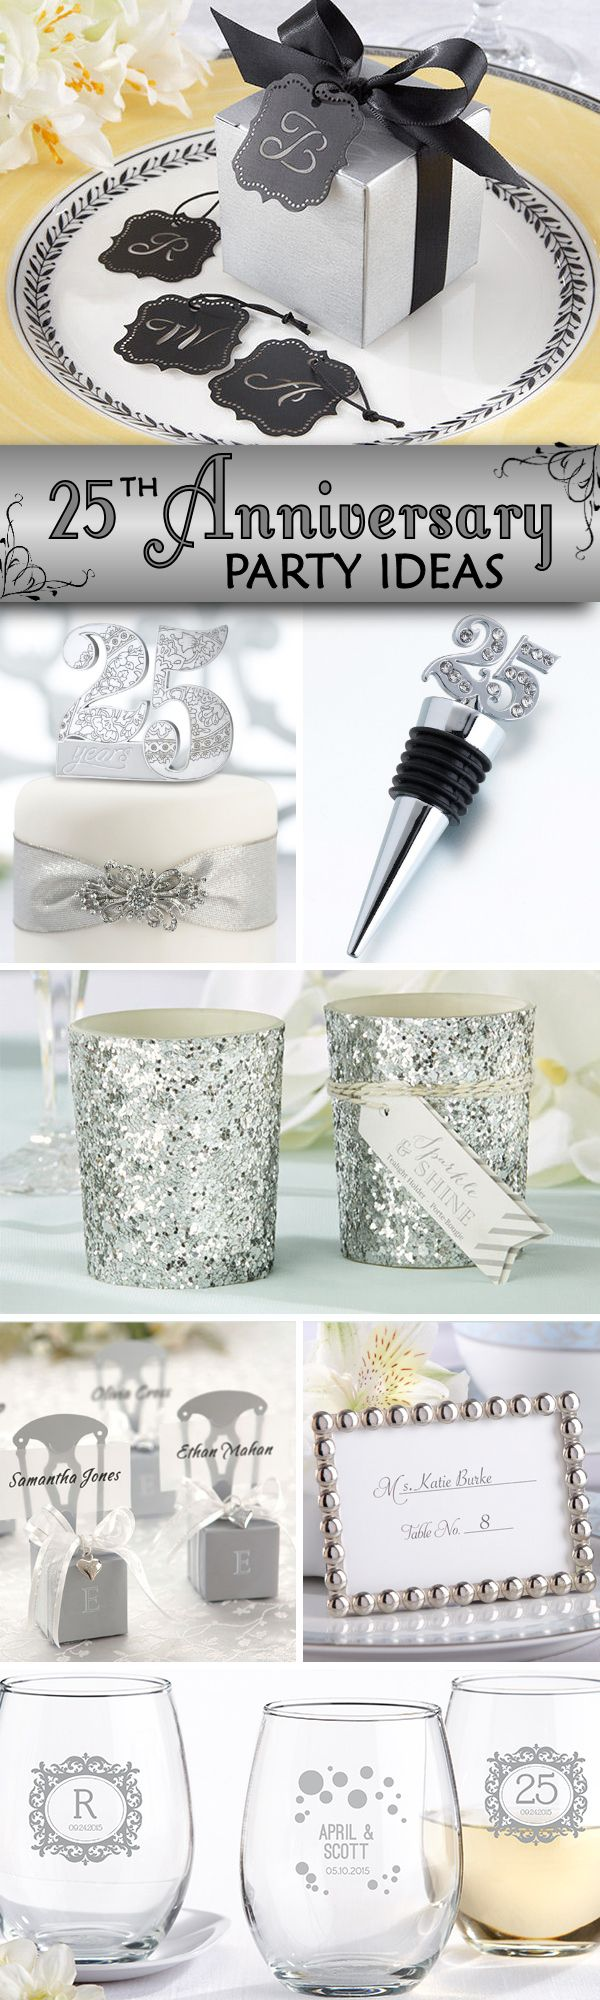 25th Wedding Anniversary Party Favors & Supplies - add some sparkle ...